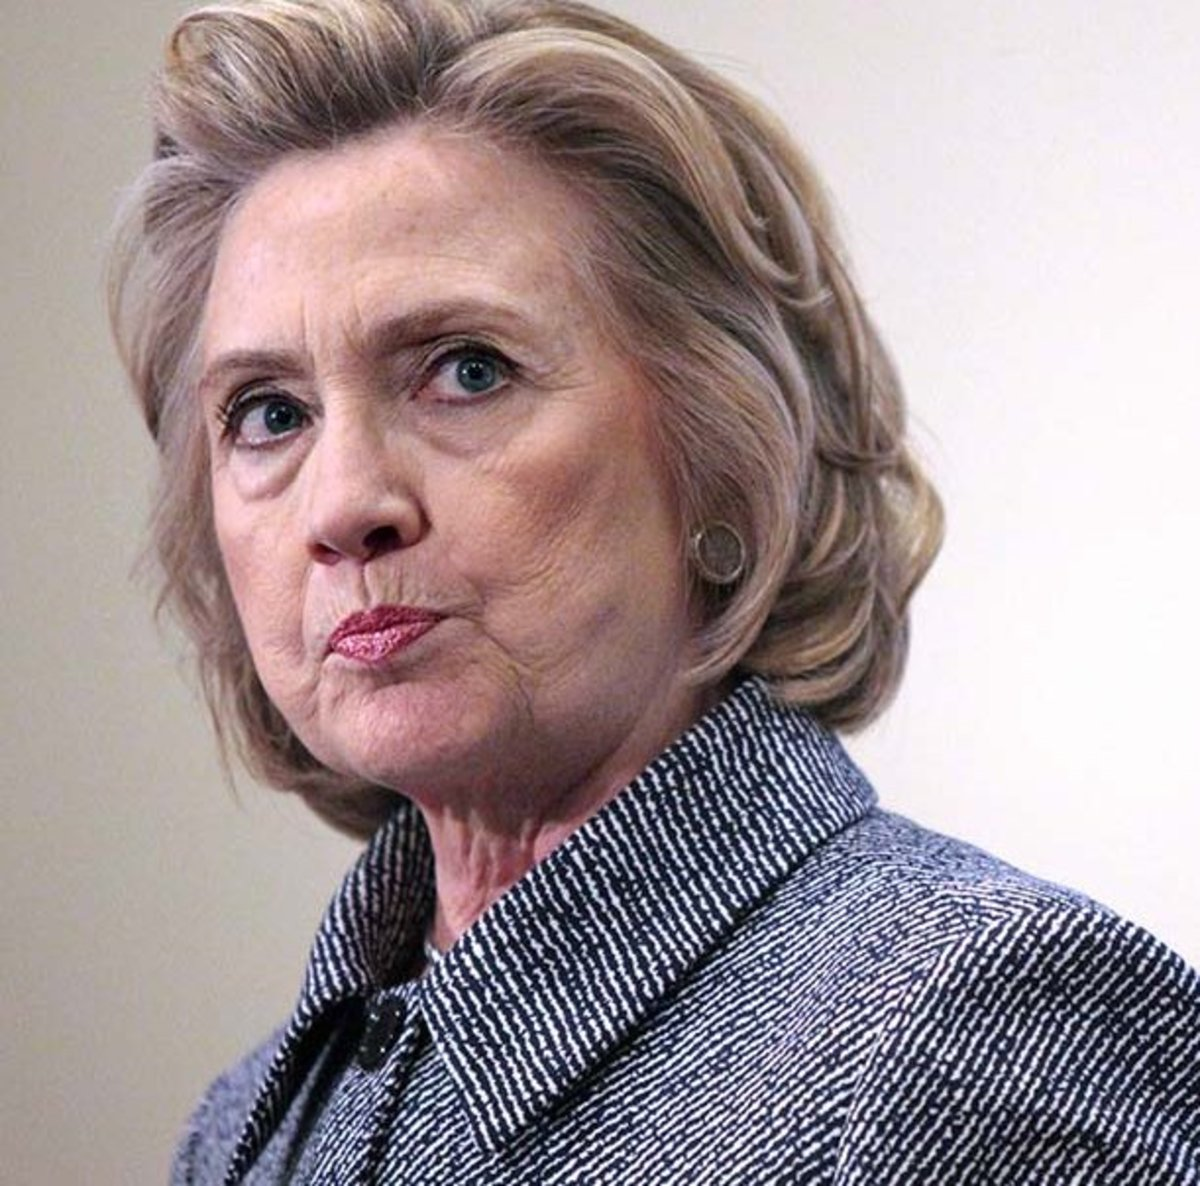 election-fraud-report-seeks-to-decertify-primary-results-for-hillary